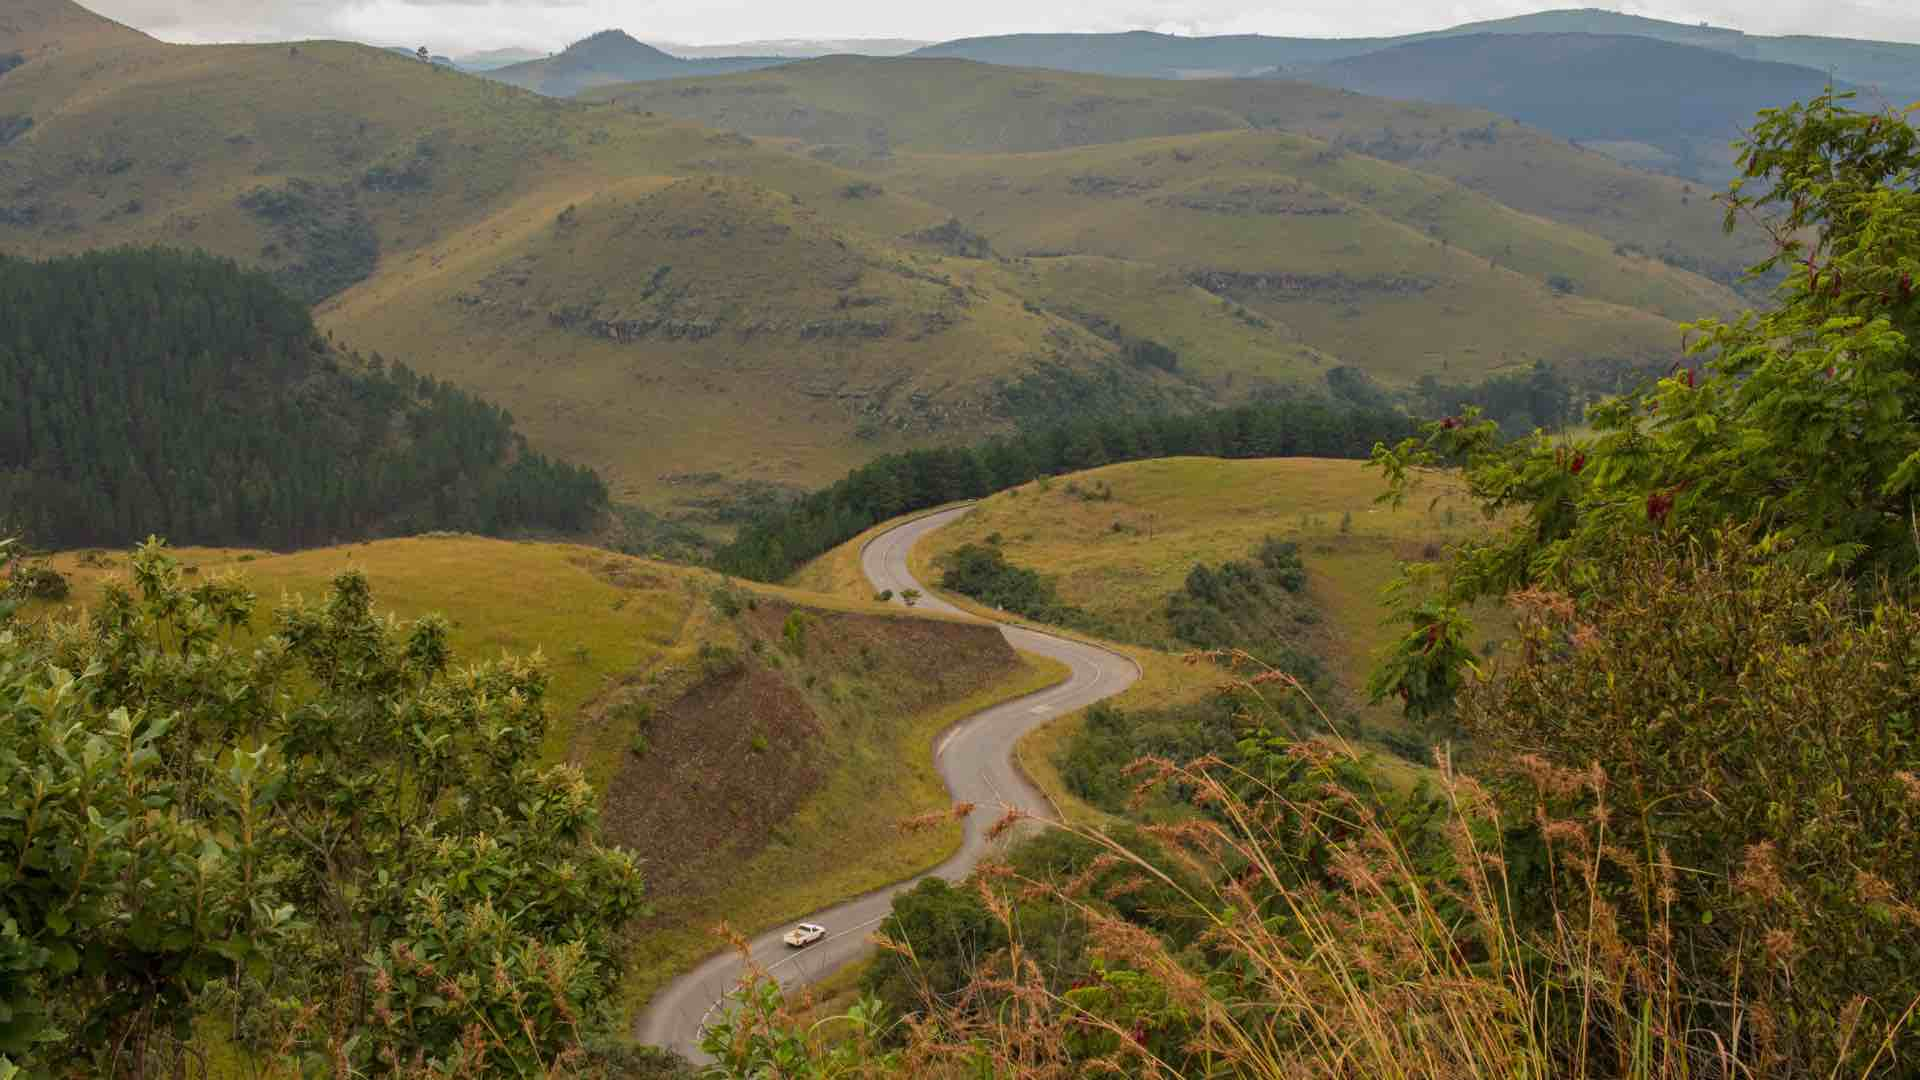 Pilgrims_rest_Robbers_Pass_southAfrica